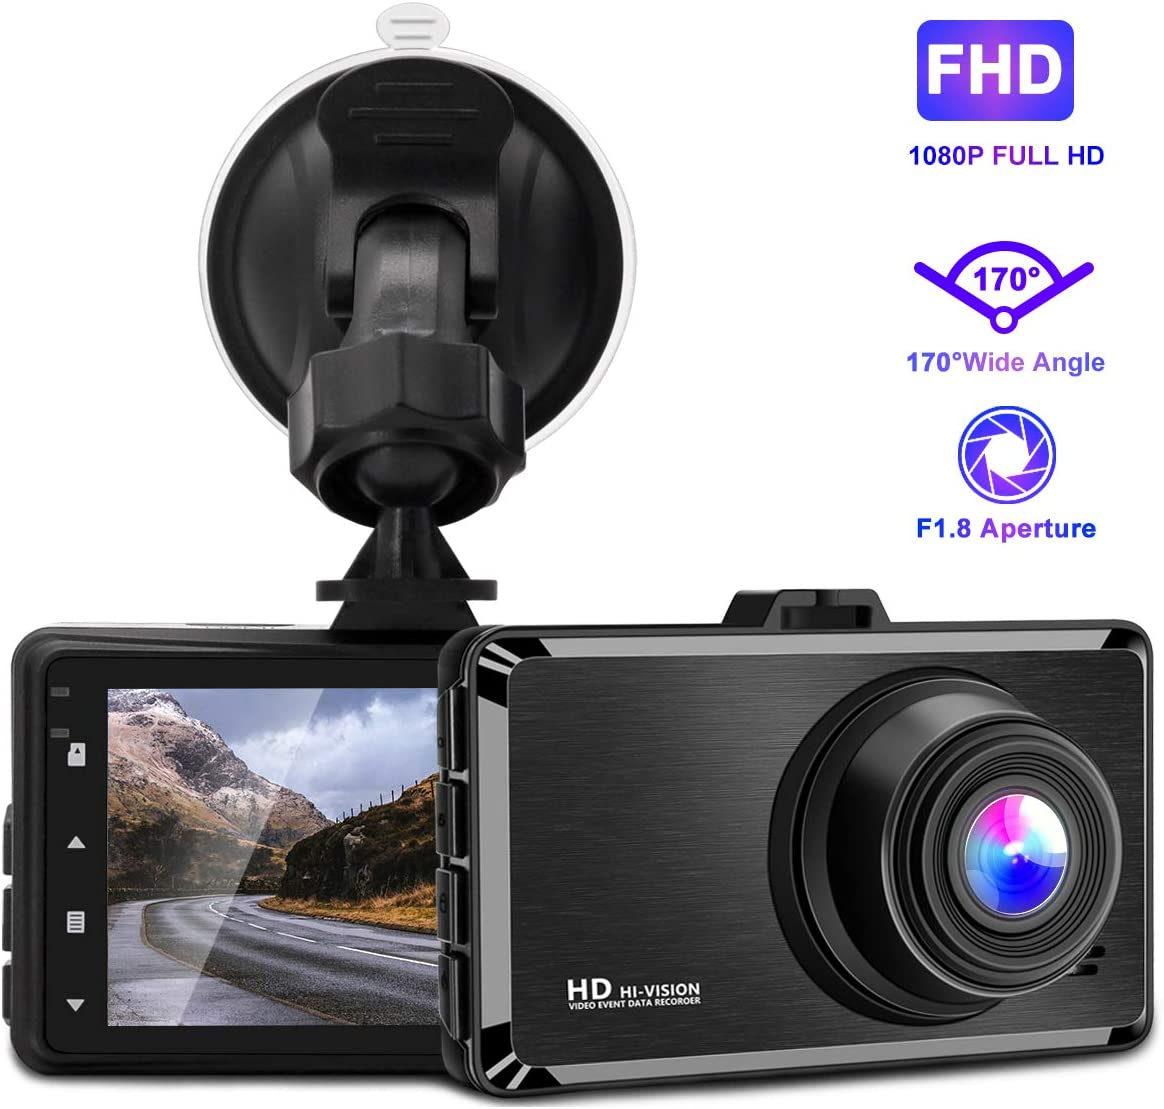 Dash Cam, 3 Inch 1080P FHD Dvr Car Driving Recorder, 170 Wide Angle Dash Camera with Loop Recording, G-Sensor, Parking Monitor, Motion Detection GRC